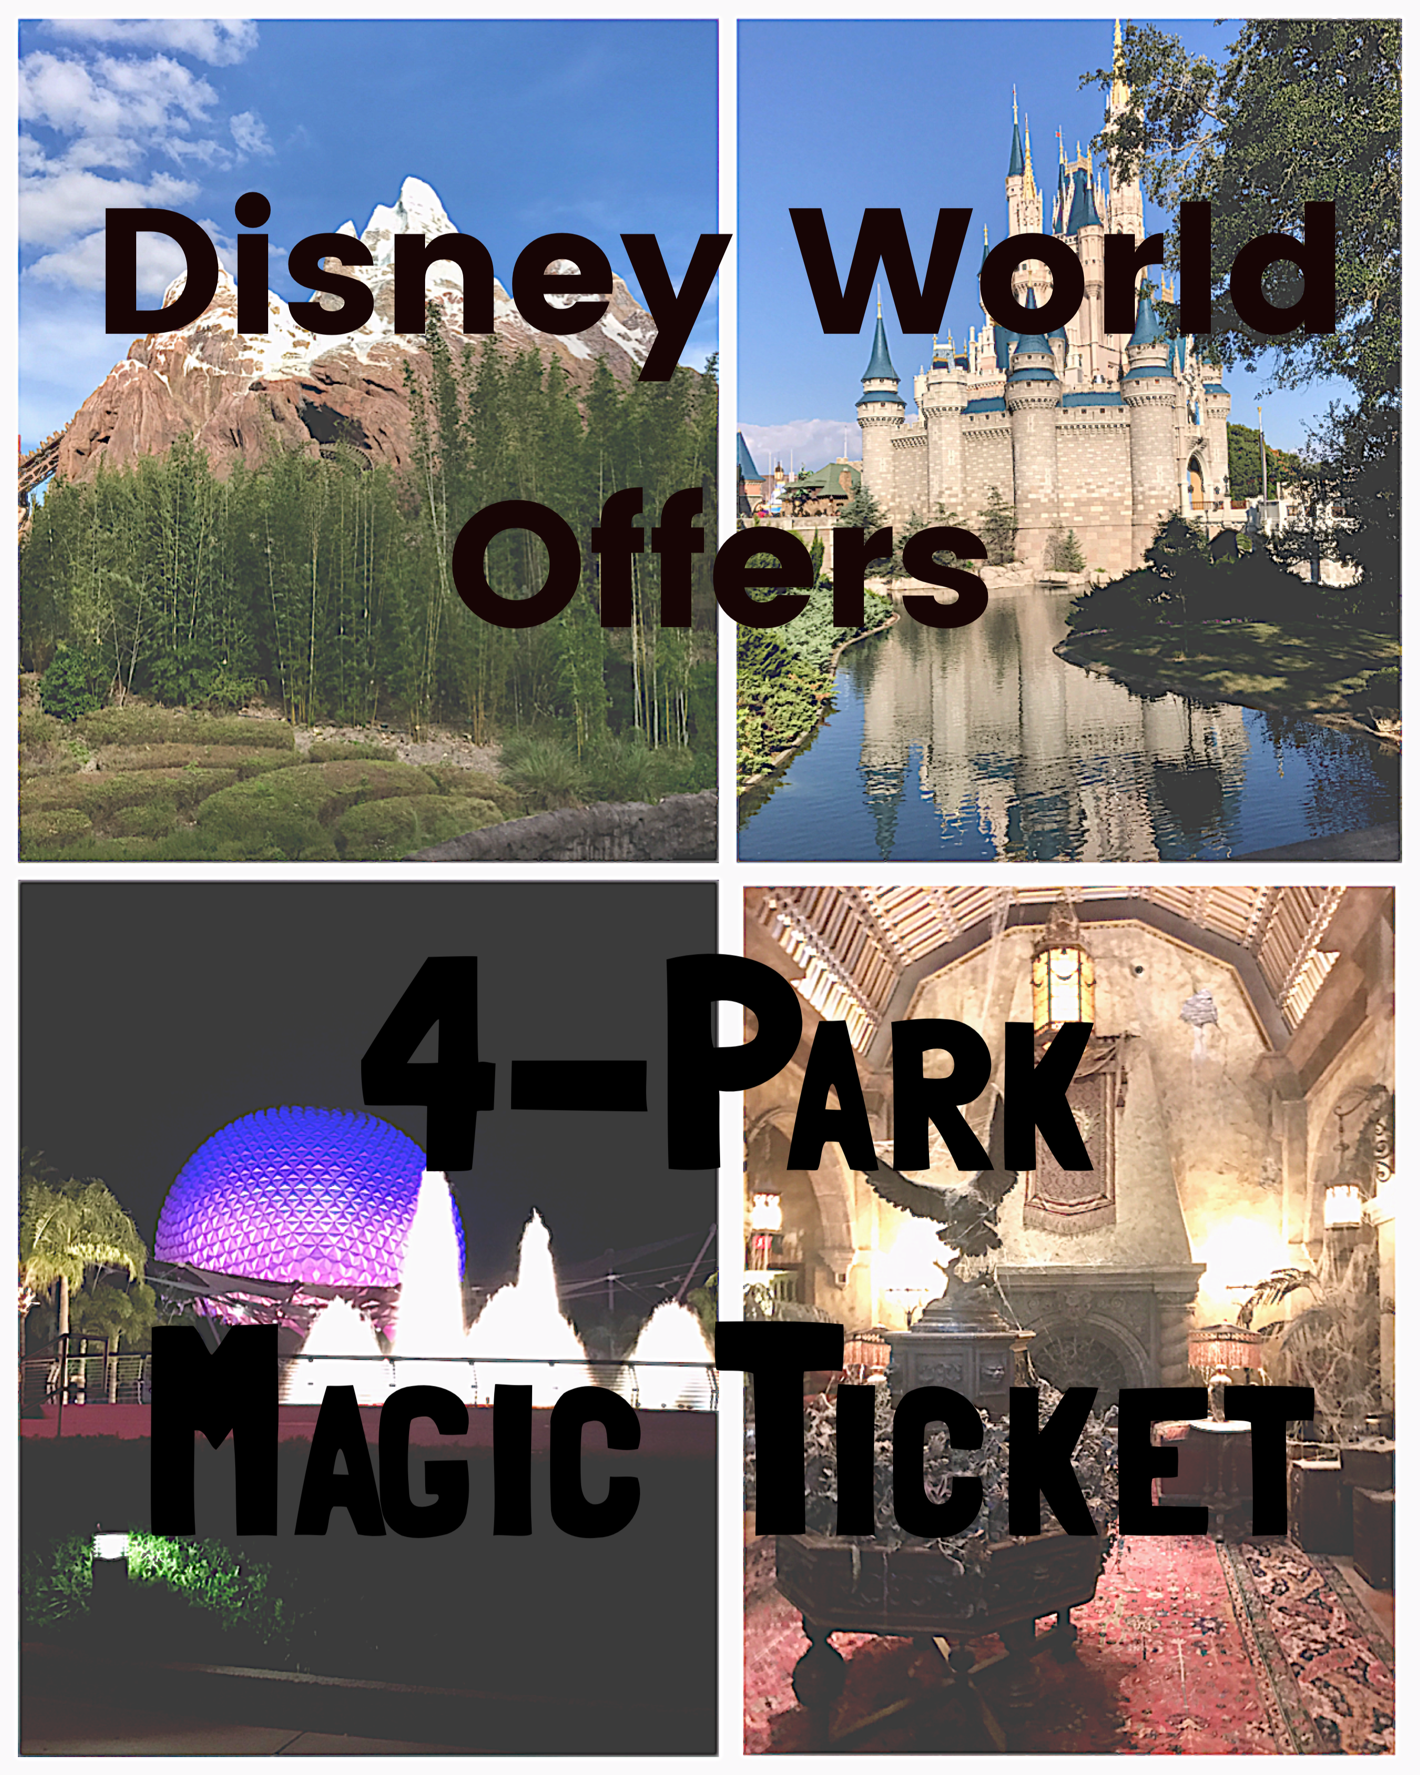 Find Out More about the New Walt Disney World 4-Park Magic Ticket Offer